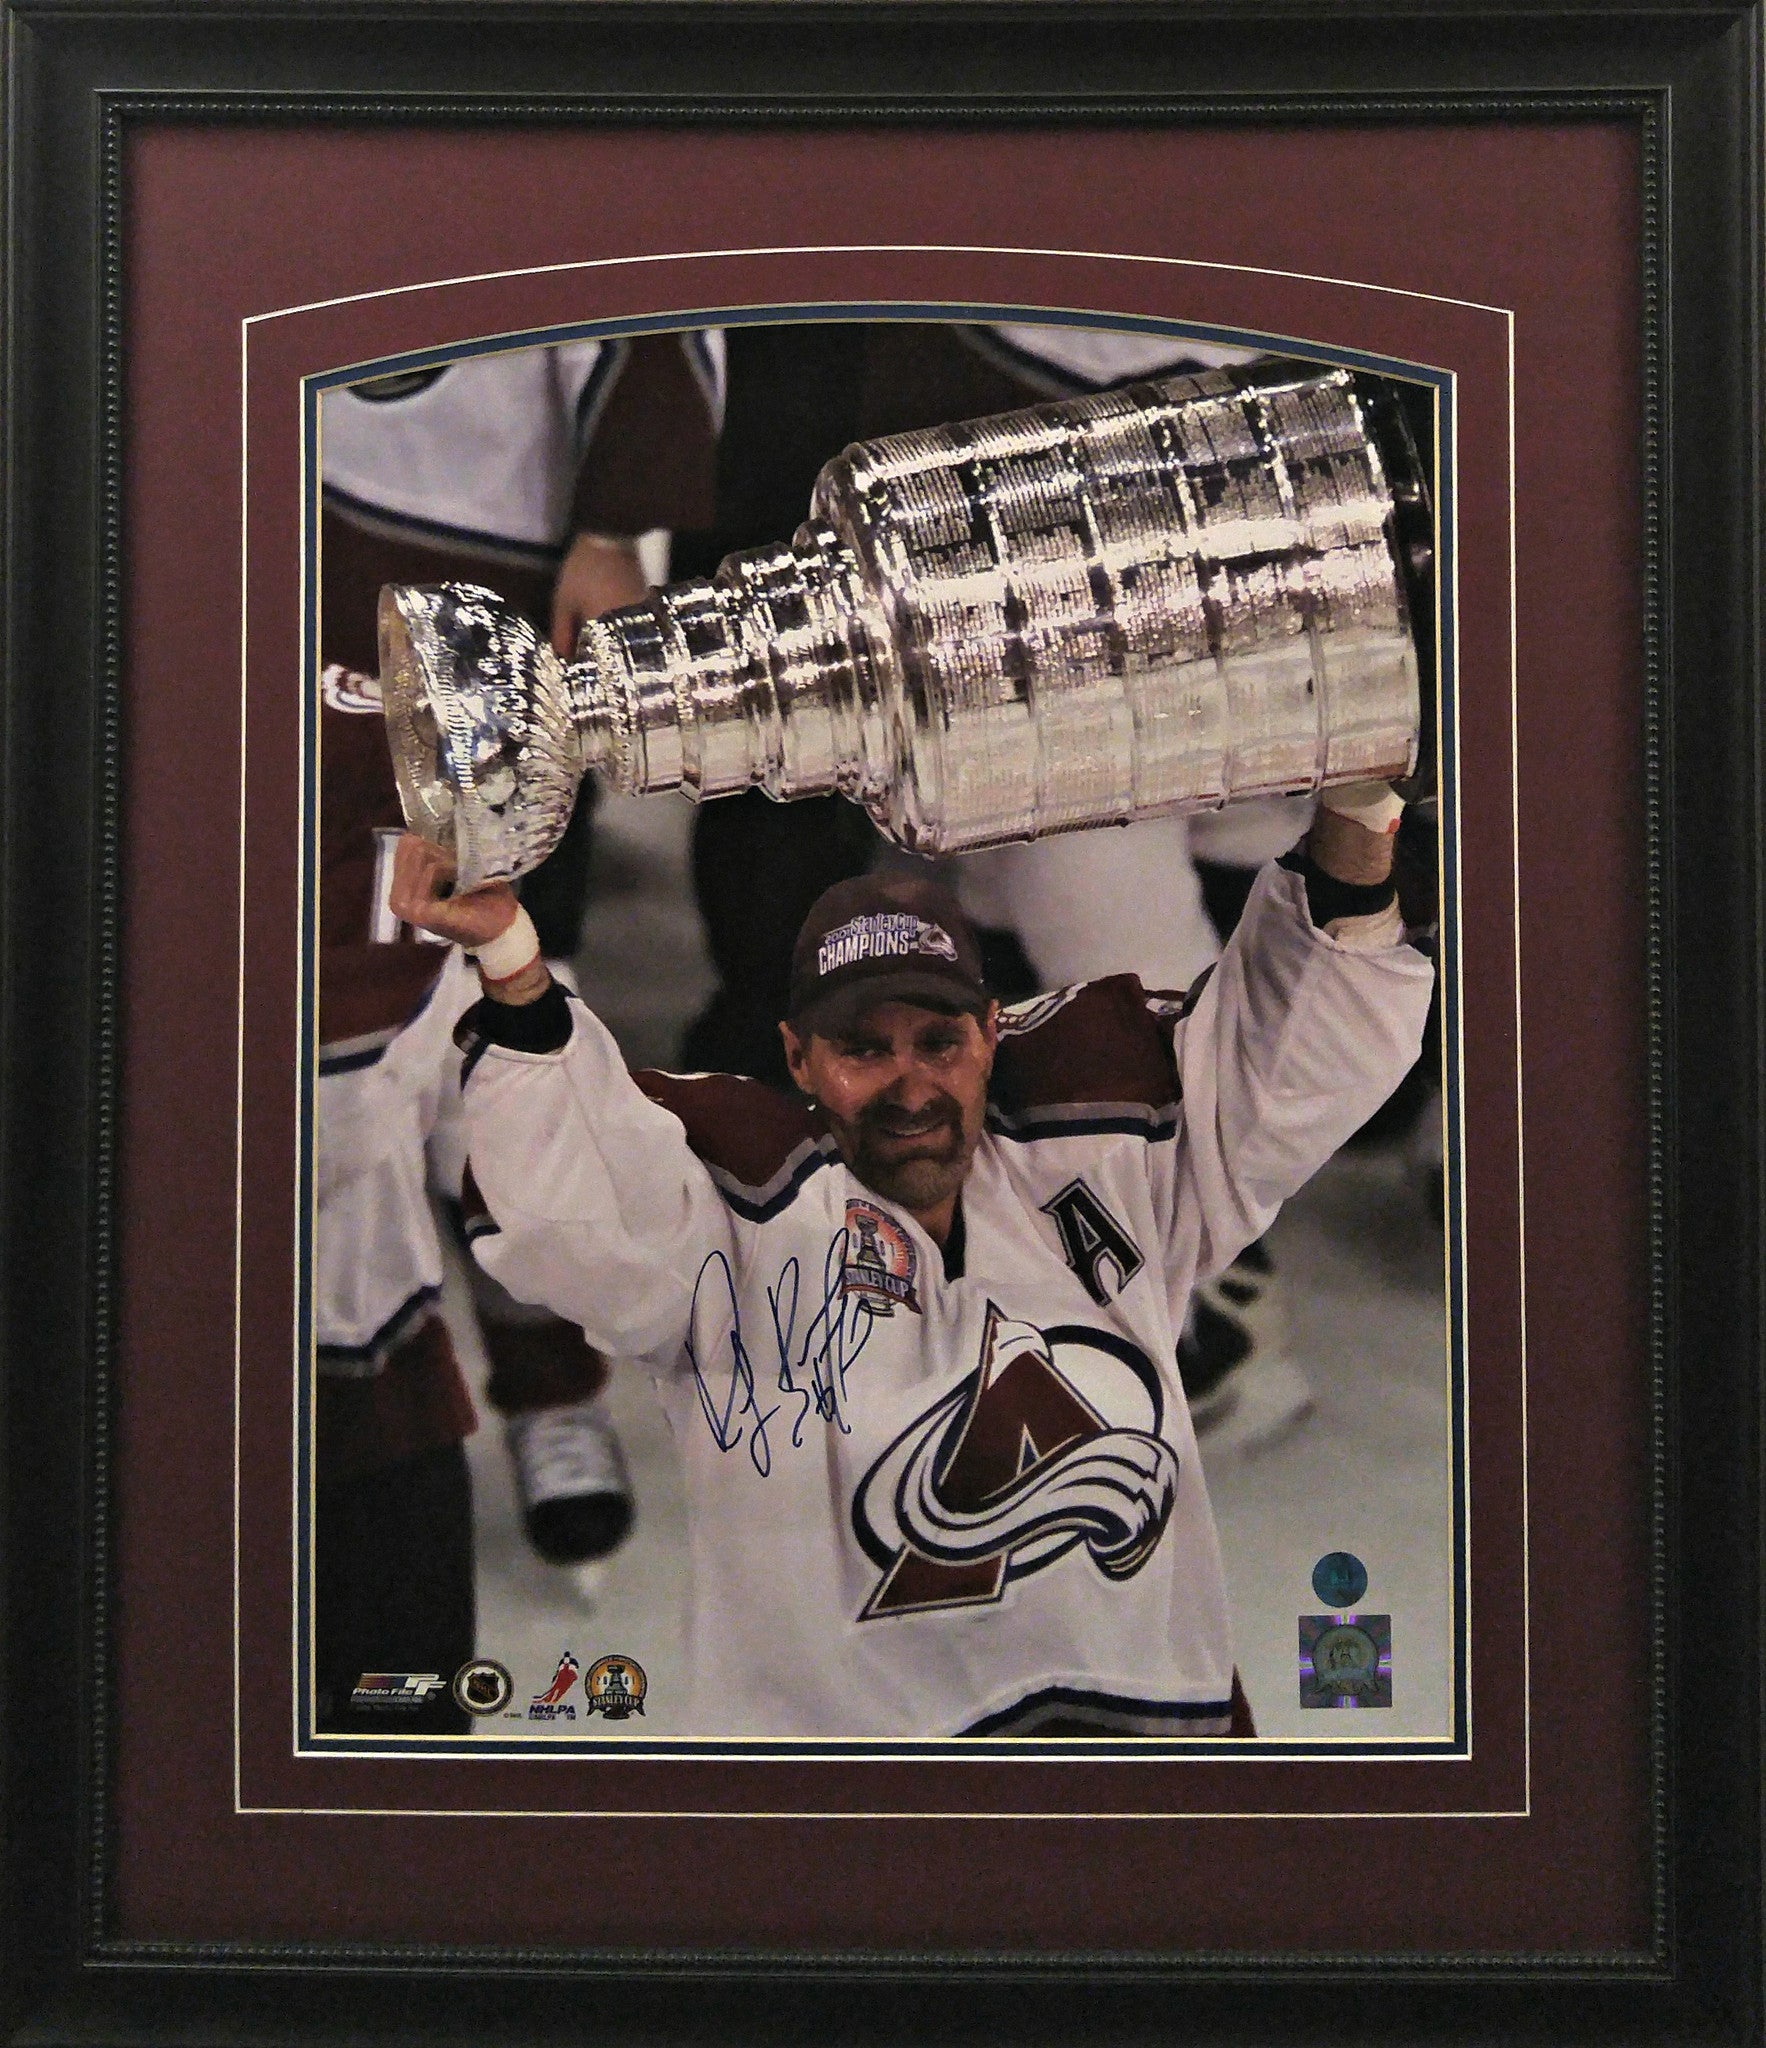 Ray Bourque Signed Framed 16x20 Photo - Latitude Sports Marketing